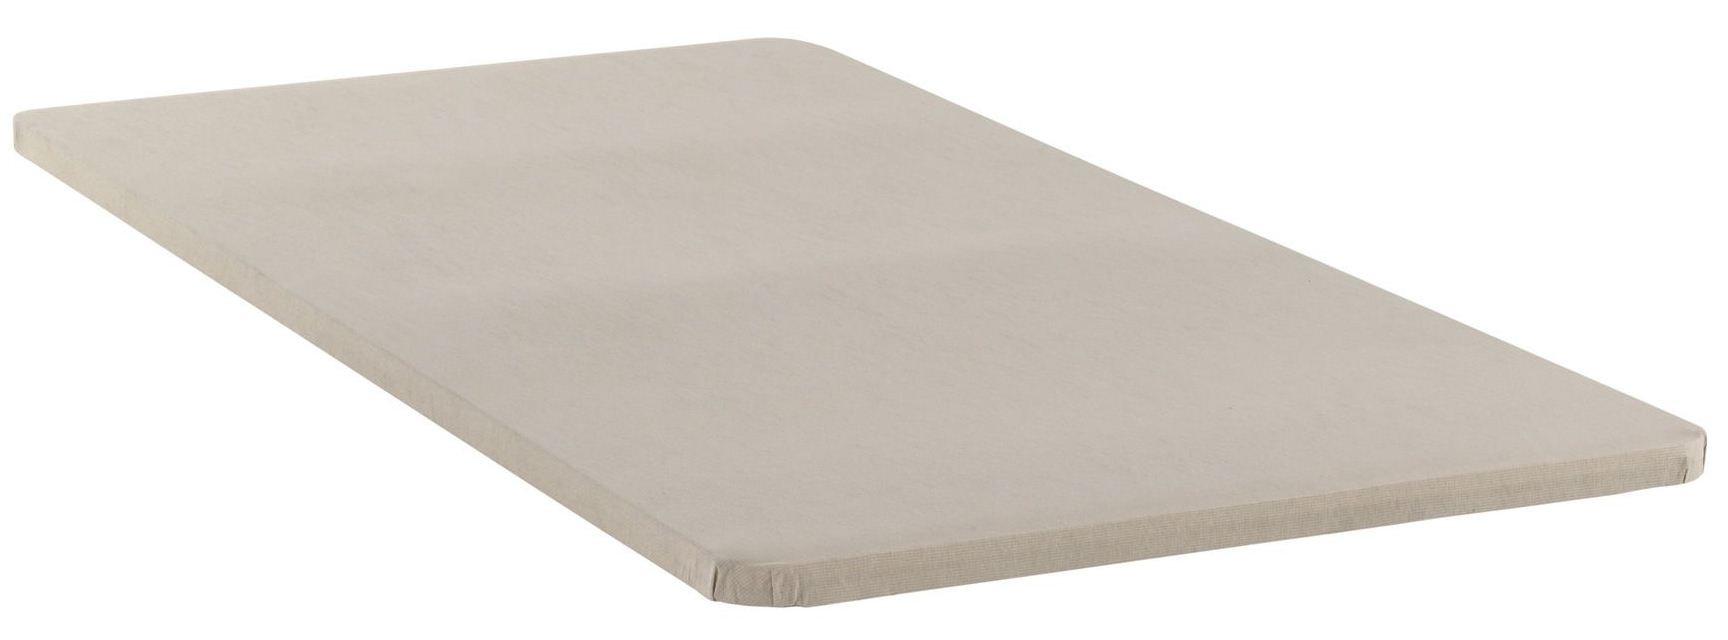 cal king size bunkie board